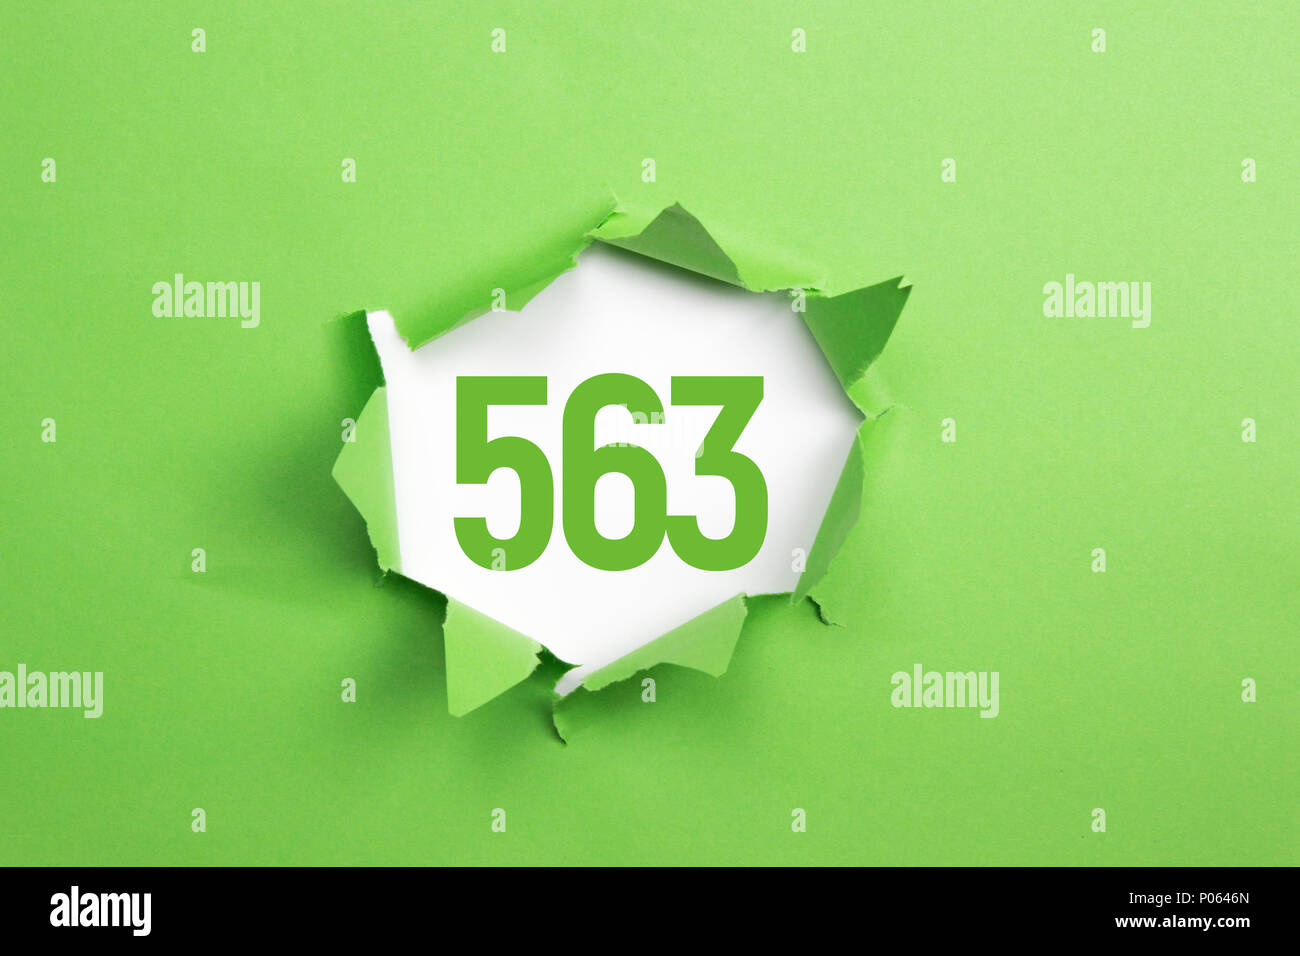 Green Number 563 on green paper background - Stock Image